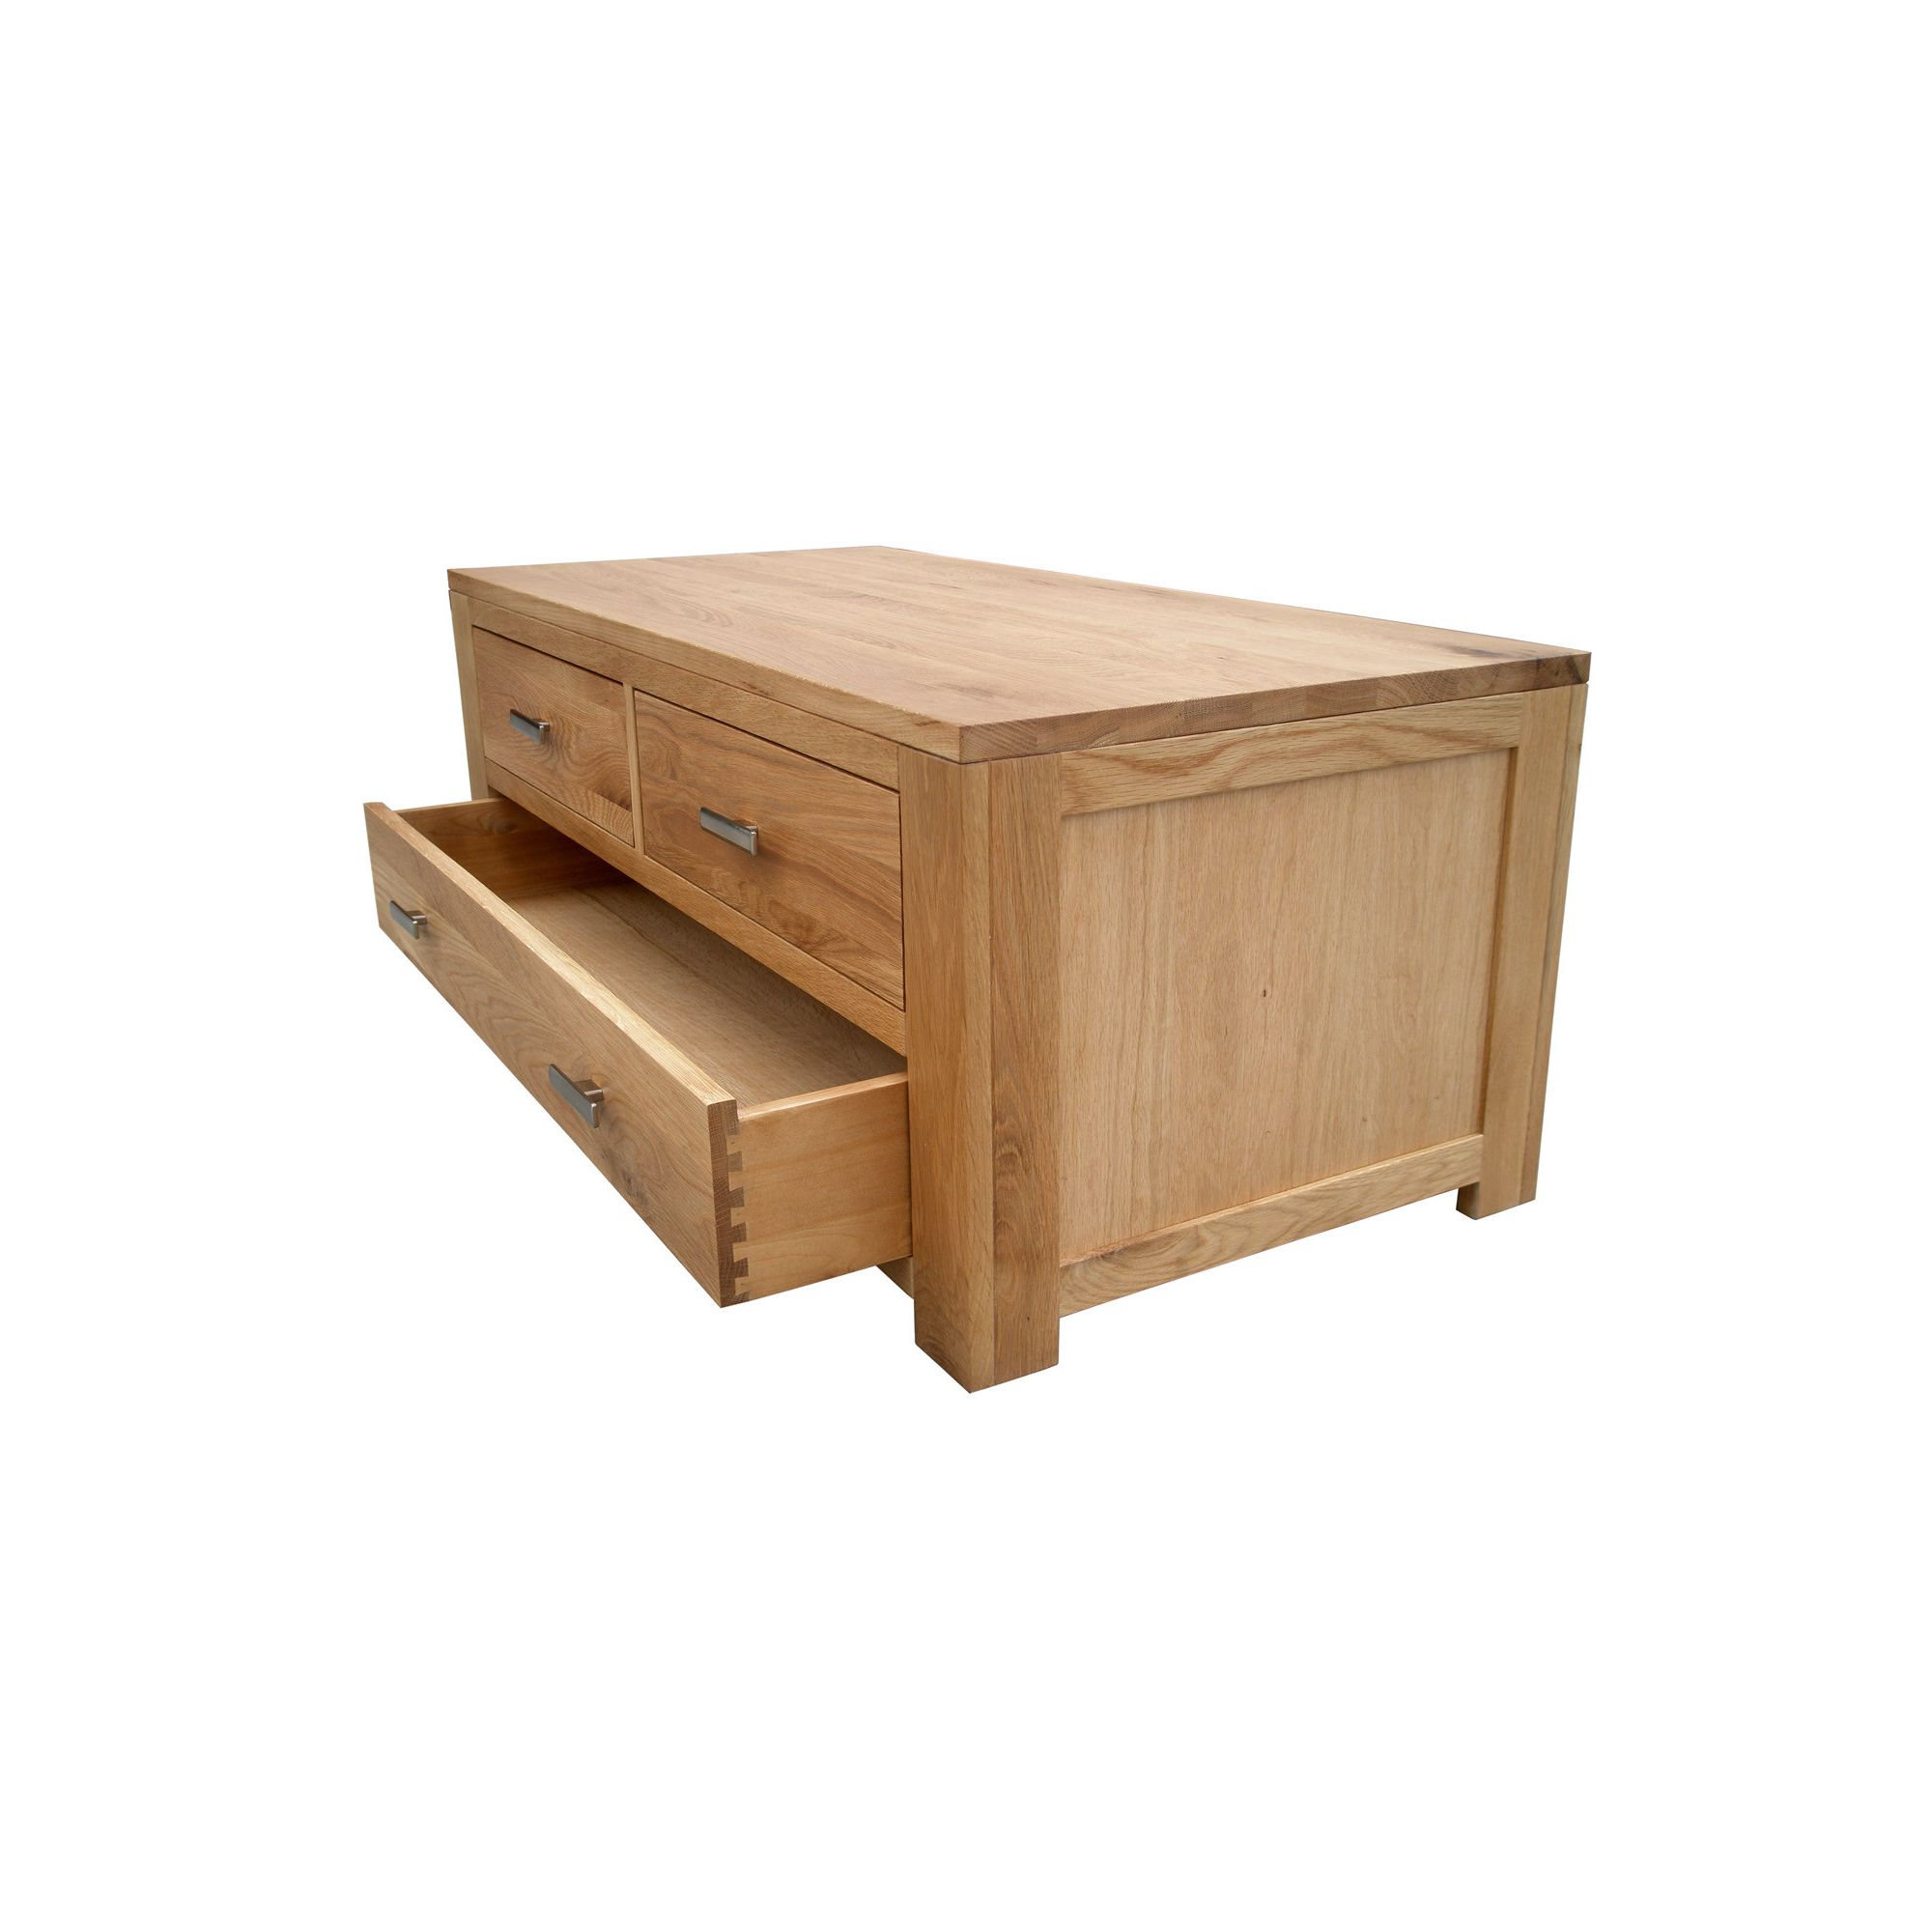 Home Zone Furniture Churchill Oak 2010 2 + 1 Drawer Coffee Table in Natural Oak at Tesco Direct